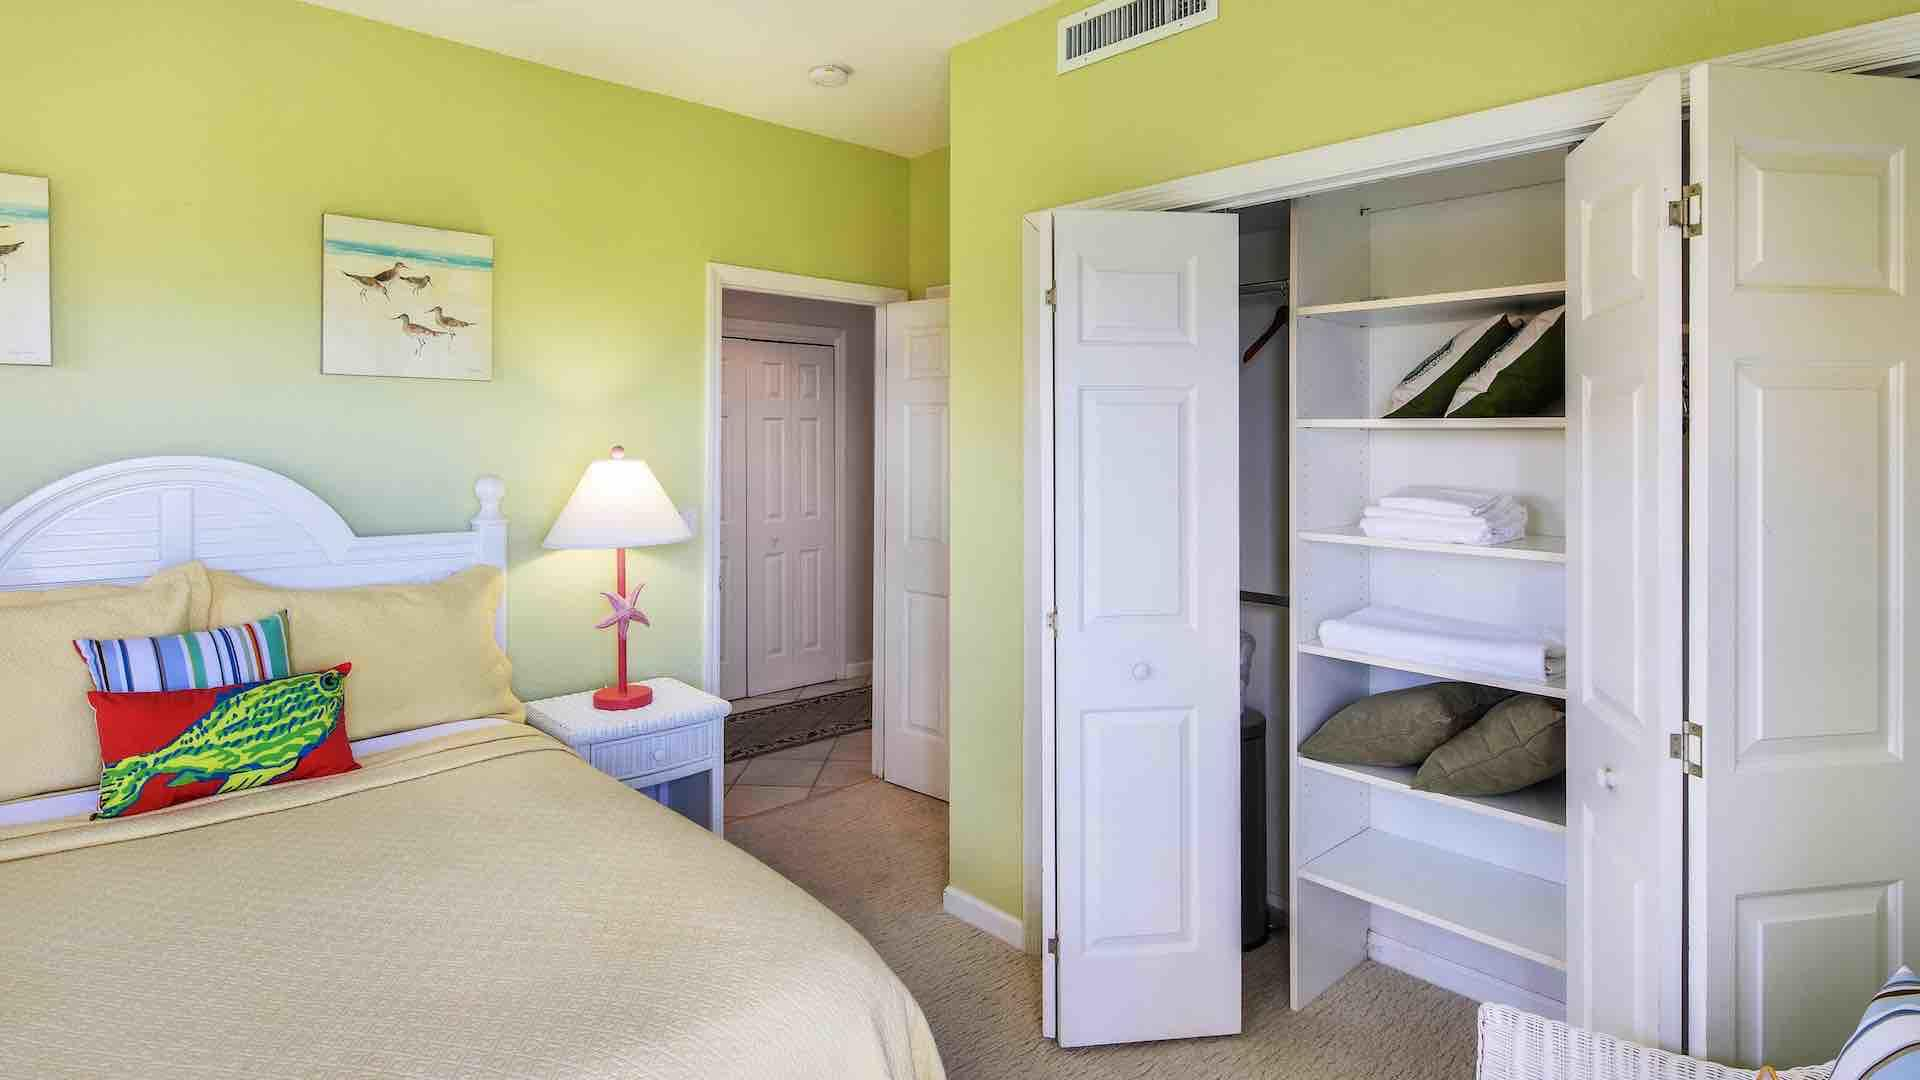 The third bedroom has a large closet too...